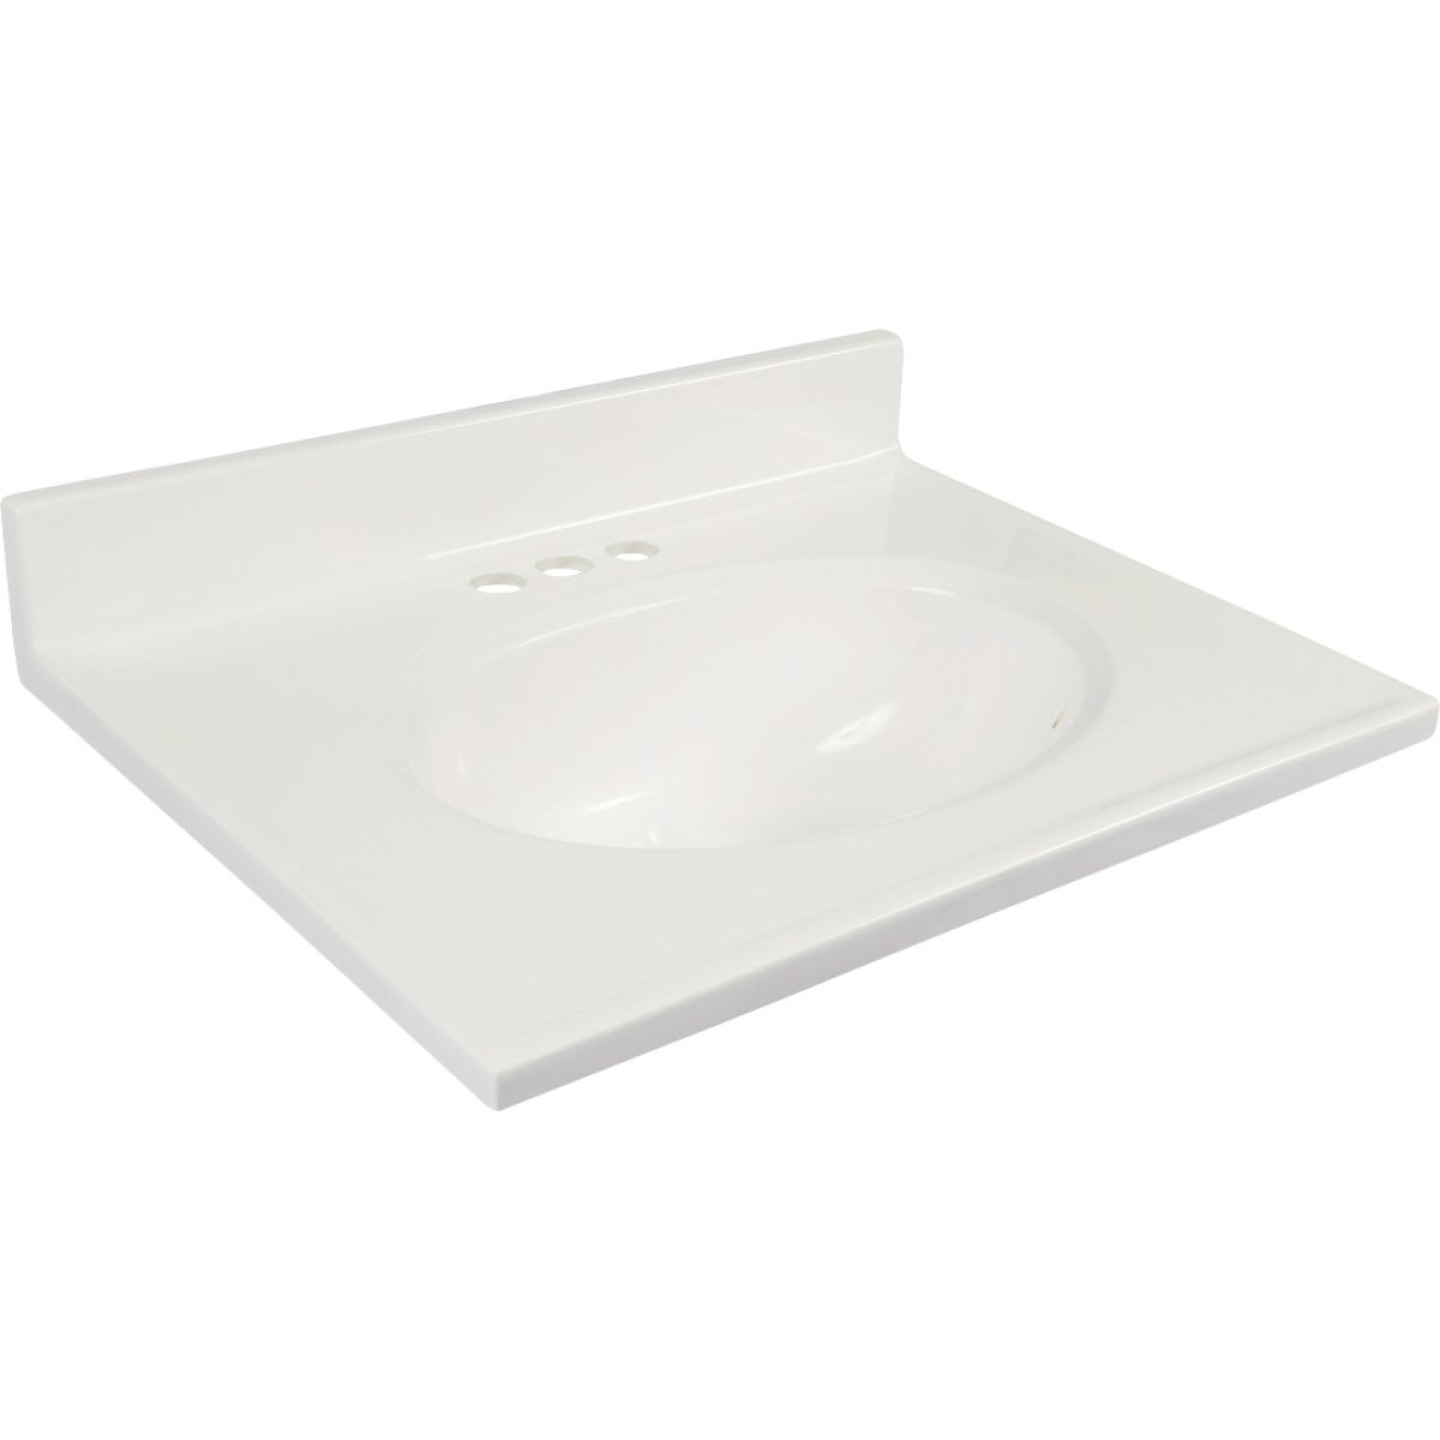 Modular Vanity Tops 31 In. W x 19 In. D Solid White Cultured Marble Non-Drip Edge Vanity Top with Oval Bowl Image 1